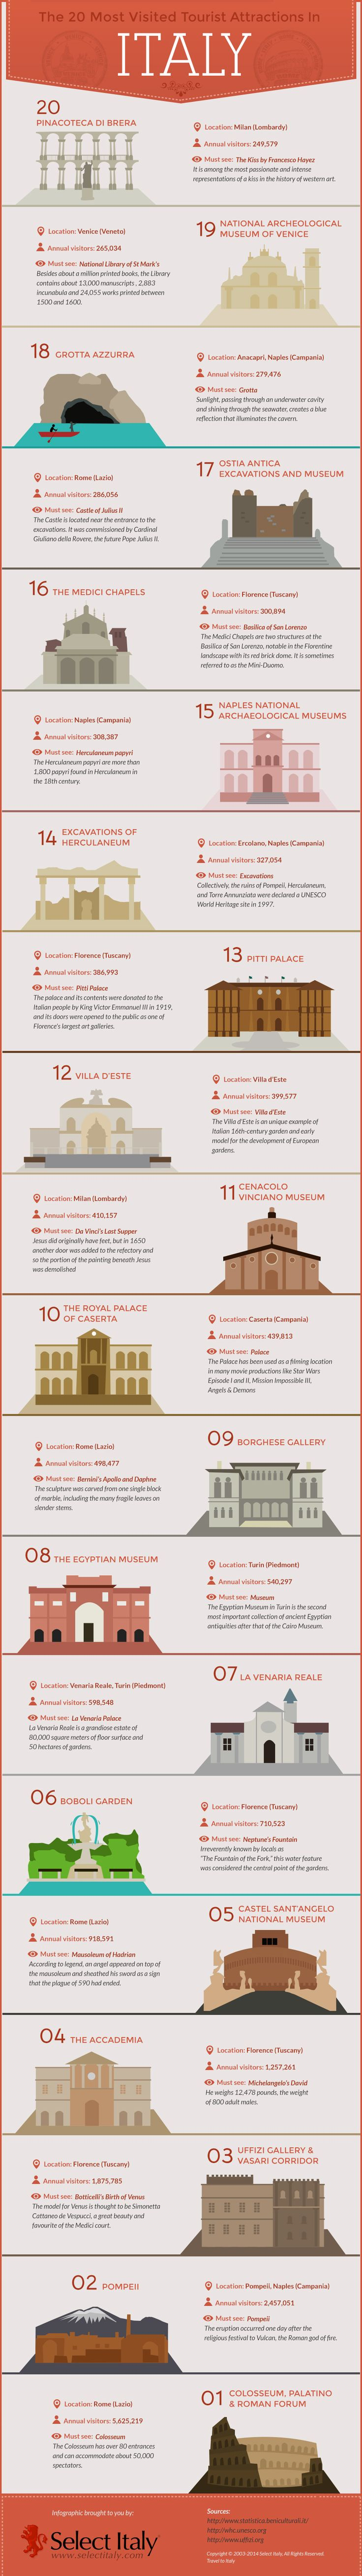 The 20 Most Visited Tourist Attractions in Italy [INFOGRAPHIC]